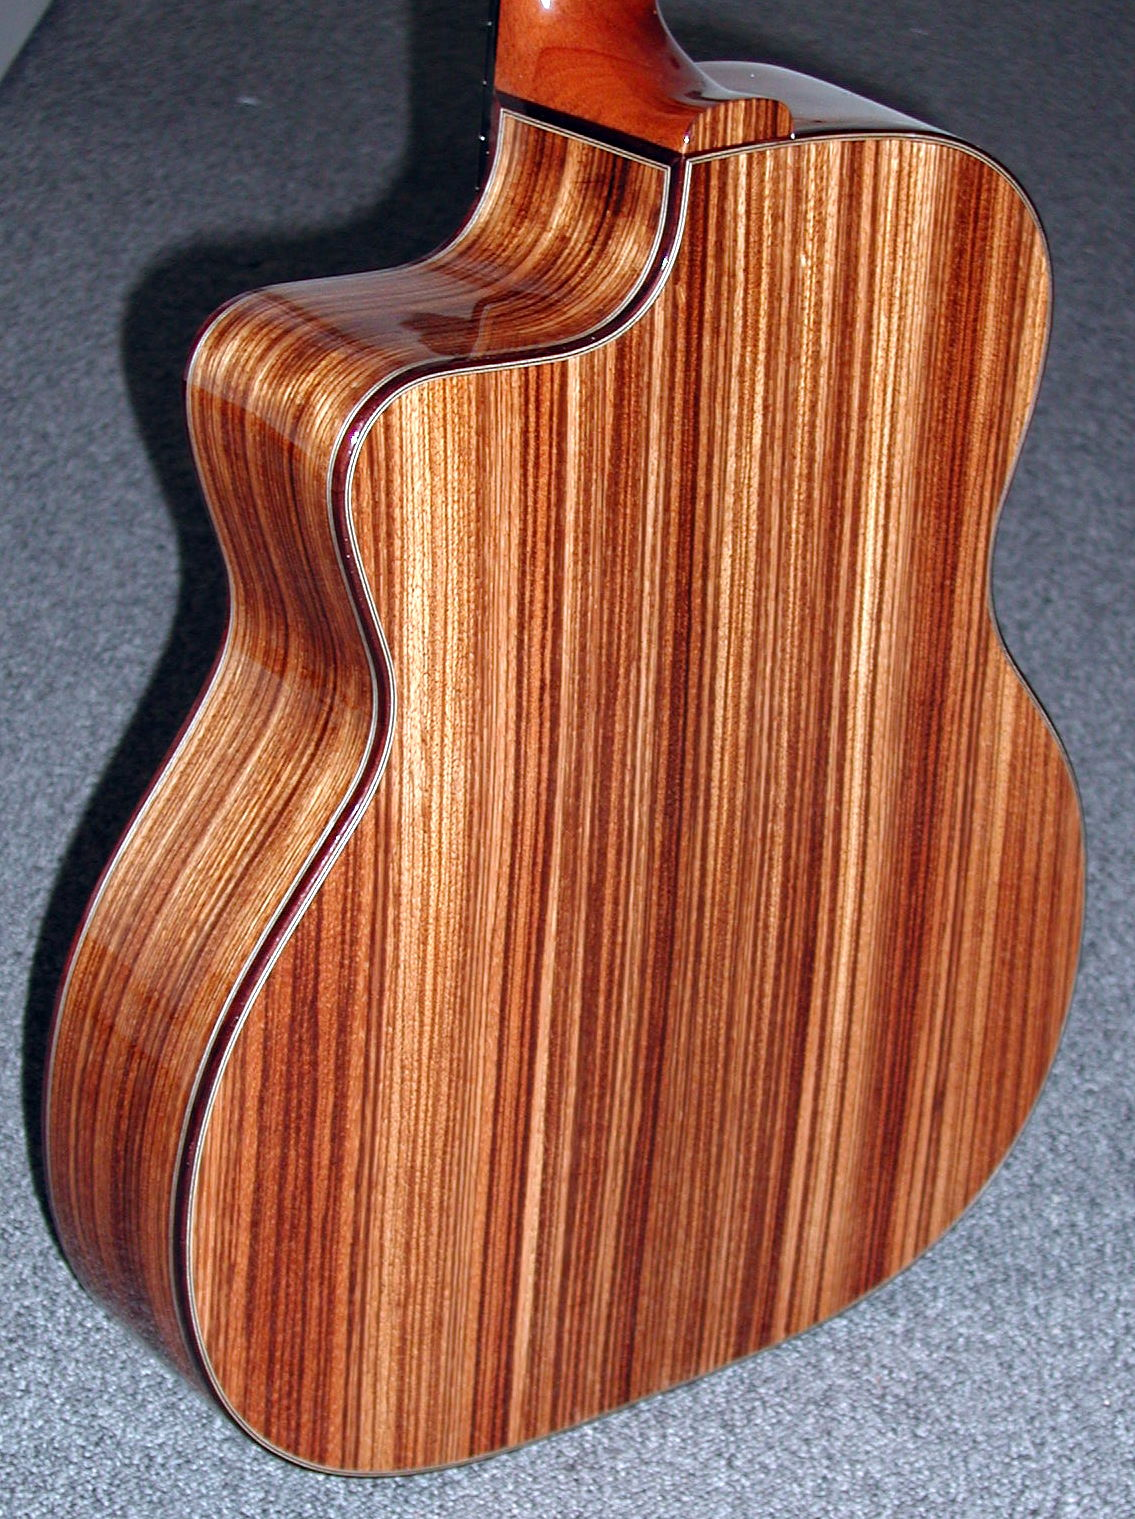 Zebra wood, very nice colour